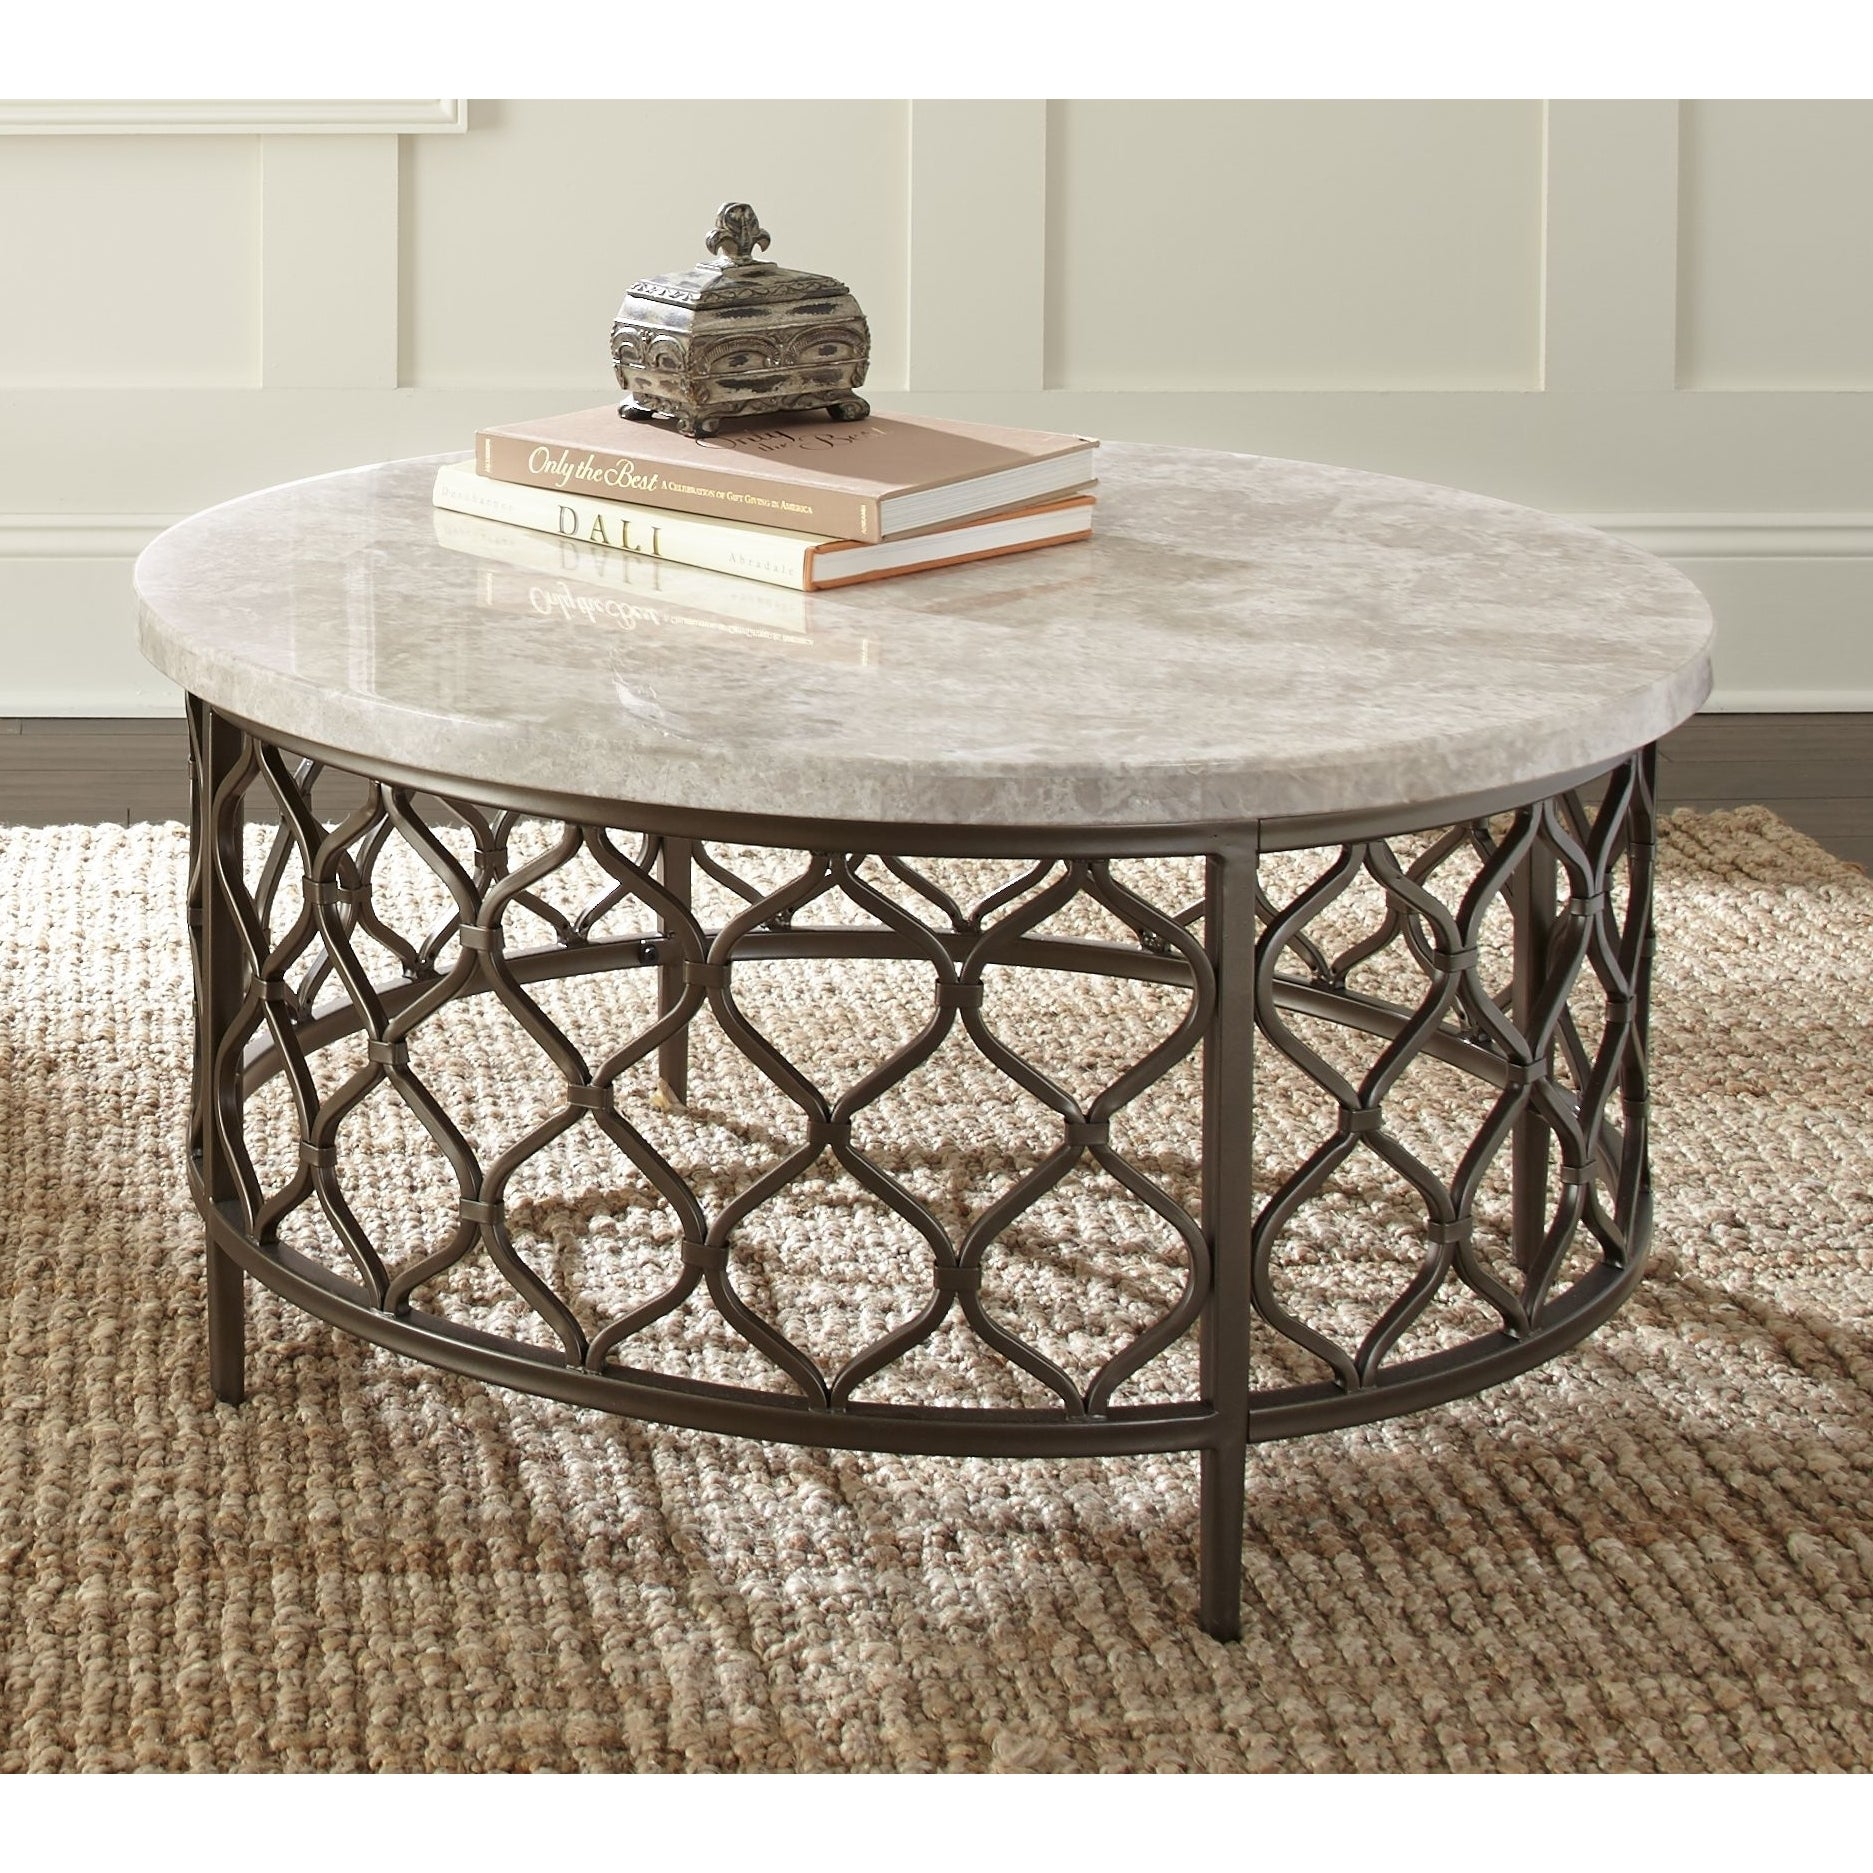 Rockvale Stone Top Round Coffee Table By Greyson Living Free Shipping Today 13741724